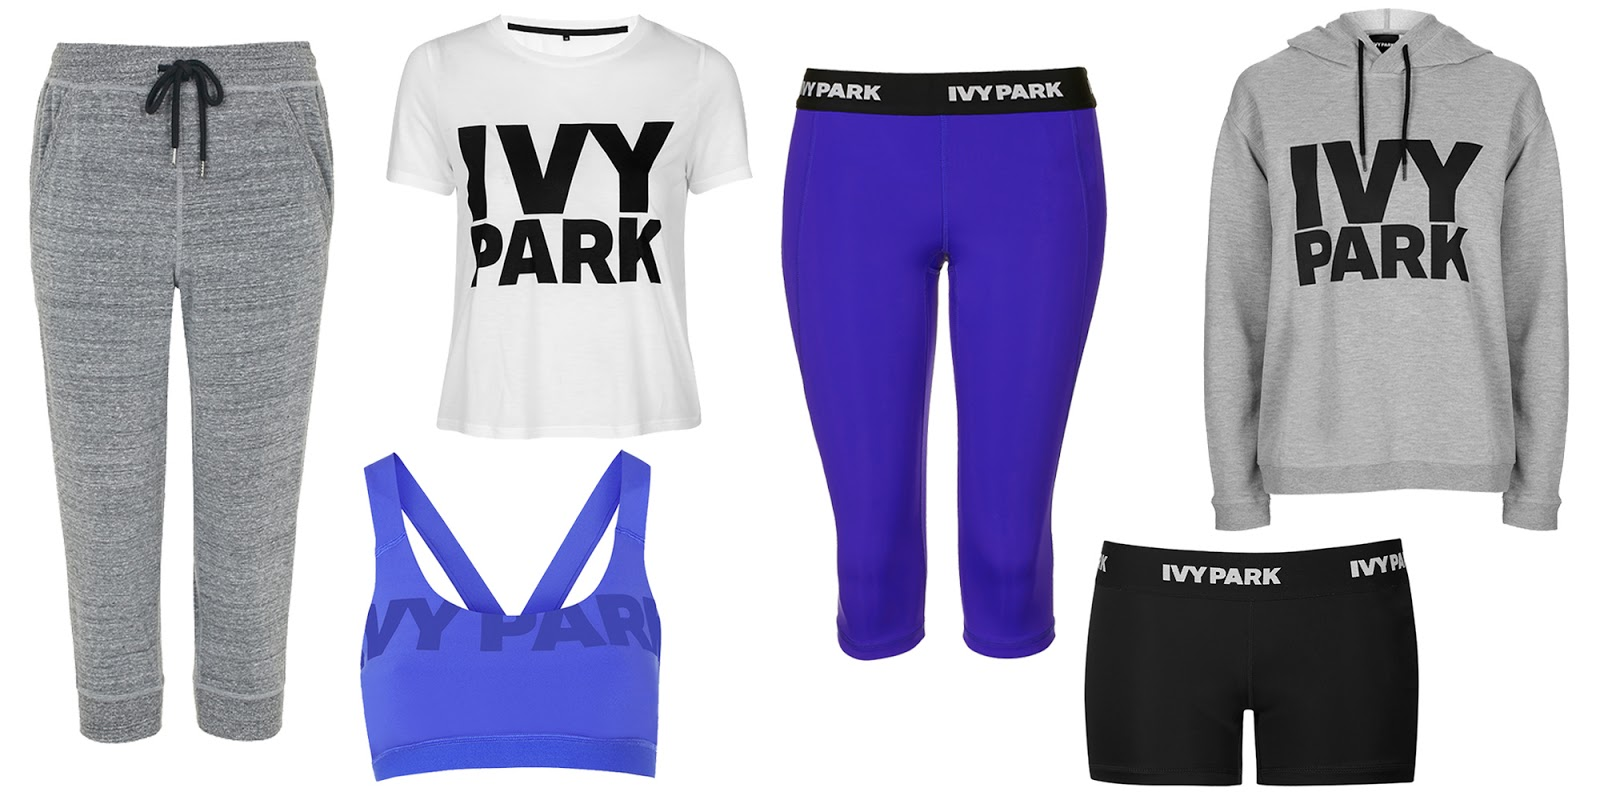 Ivy Park from Topshop